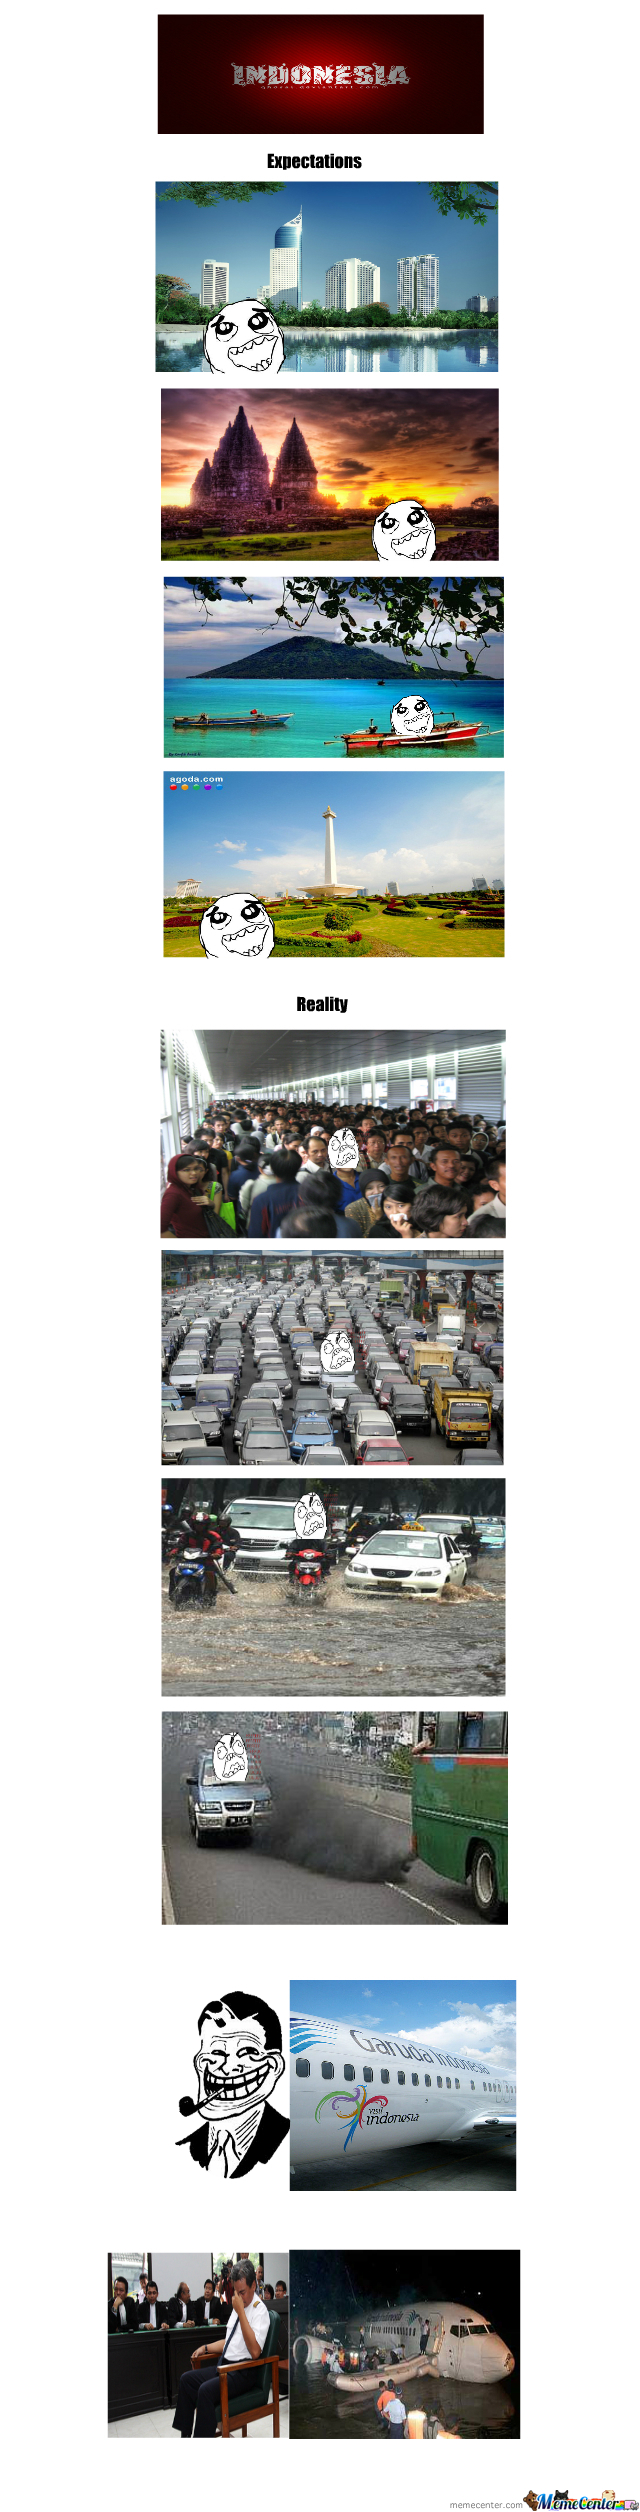 Indonesia Expectations V.s. Reality